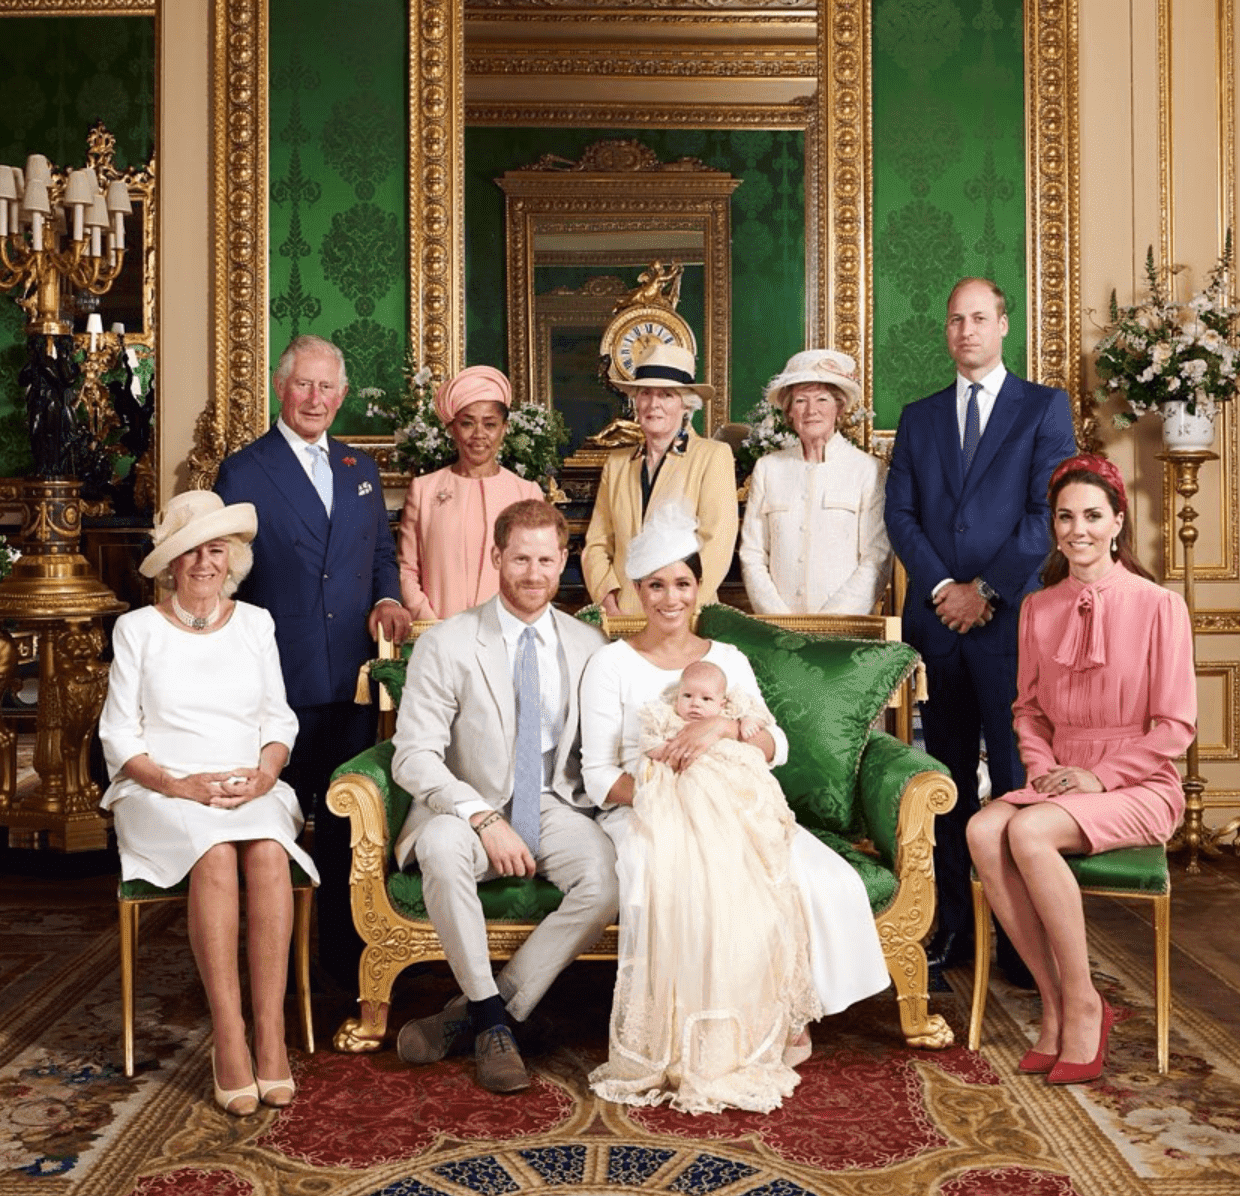 From left to right: The Duchess of Cornwall, The Prince of Wales, Ms Doria Ragland, Lady Jane Fellowes, Lady Sarah McCorquodale, The Duke of Cambridge and The Duchess of Cambridge. The Duke and Duchess of Sussex are the the centre with Archie. | Source: Instagram/SusseRoyal